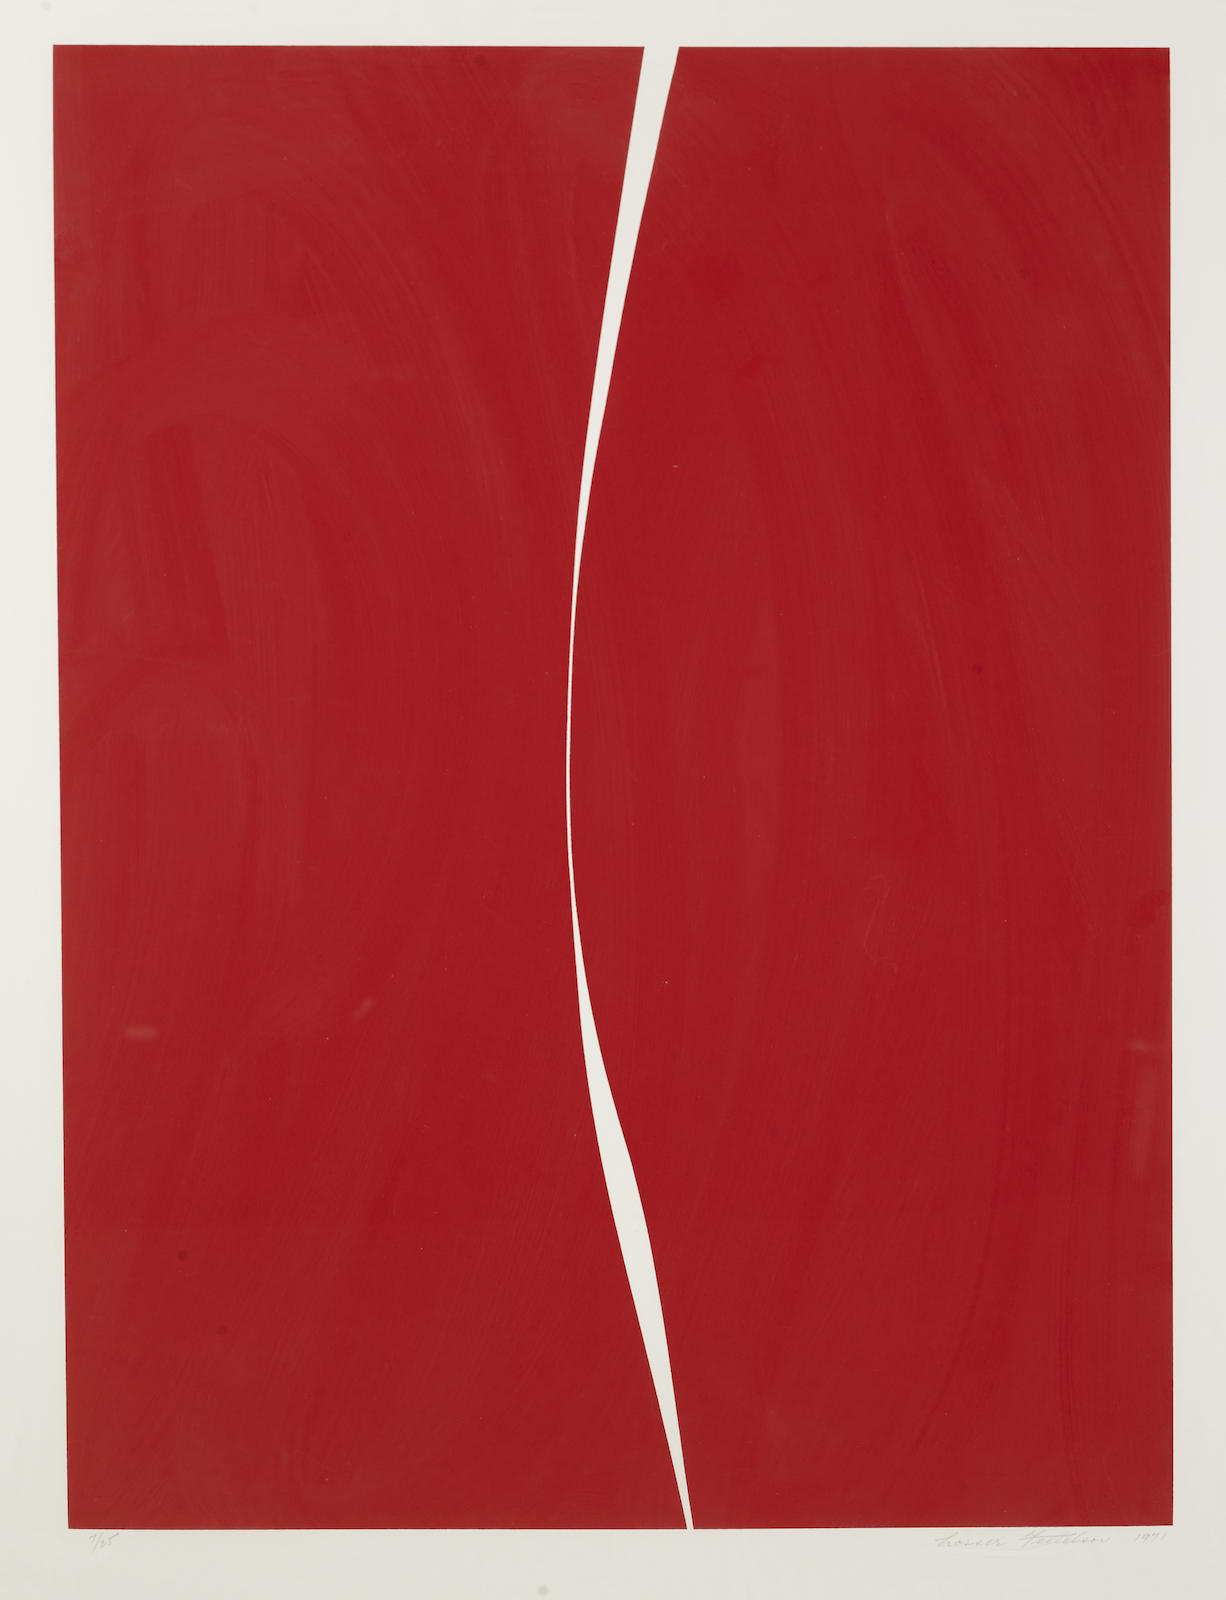 Lorser Feitelson-Untitled-1971